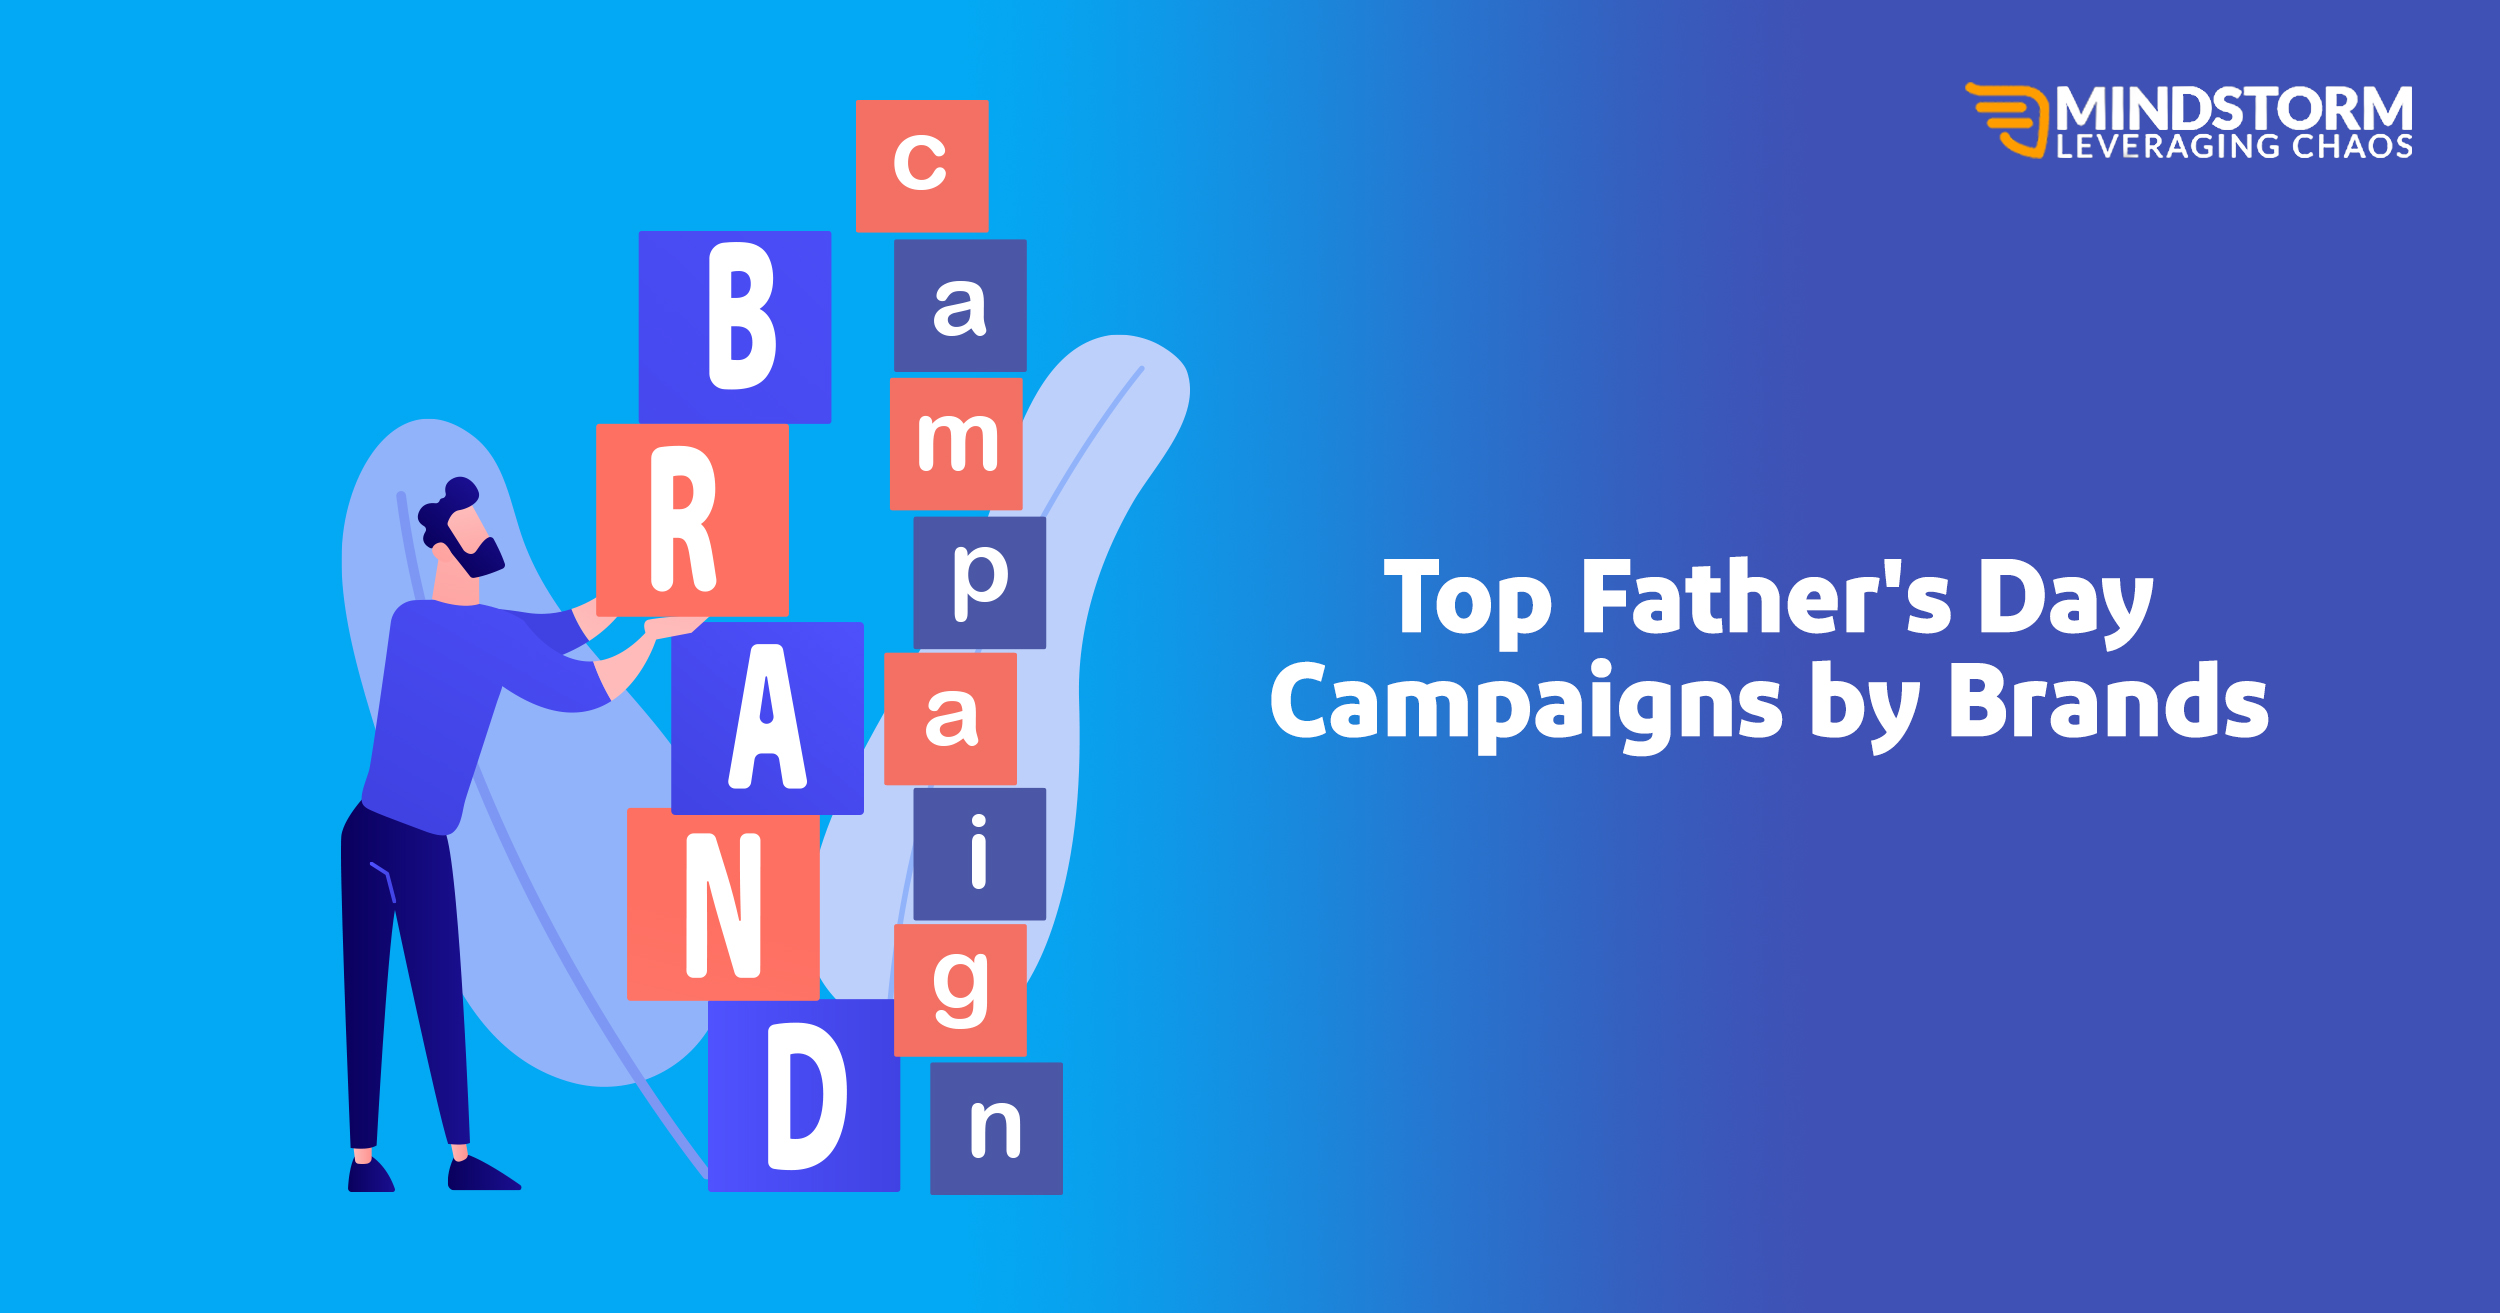 Top Father's Day Campaigns by Brands